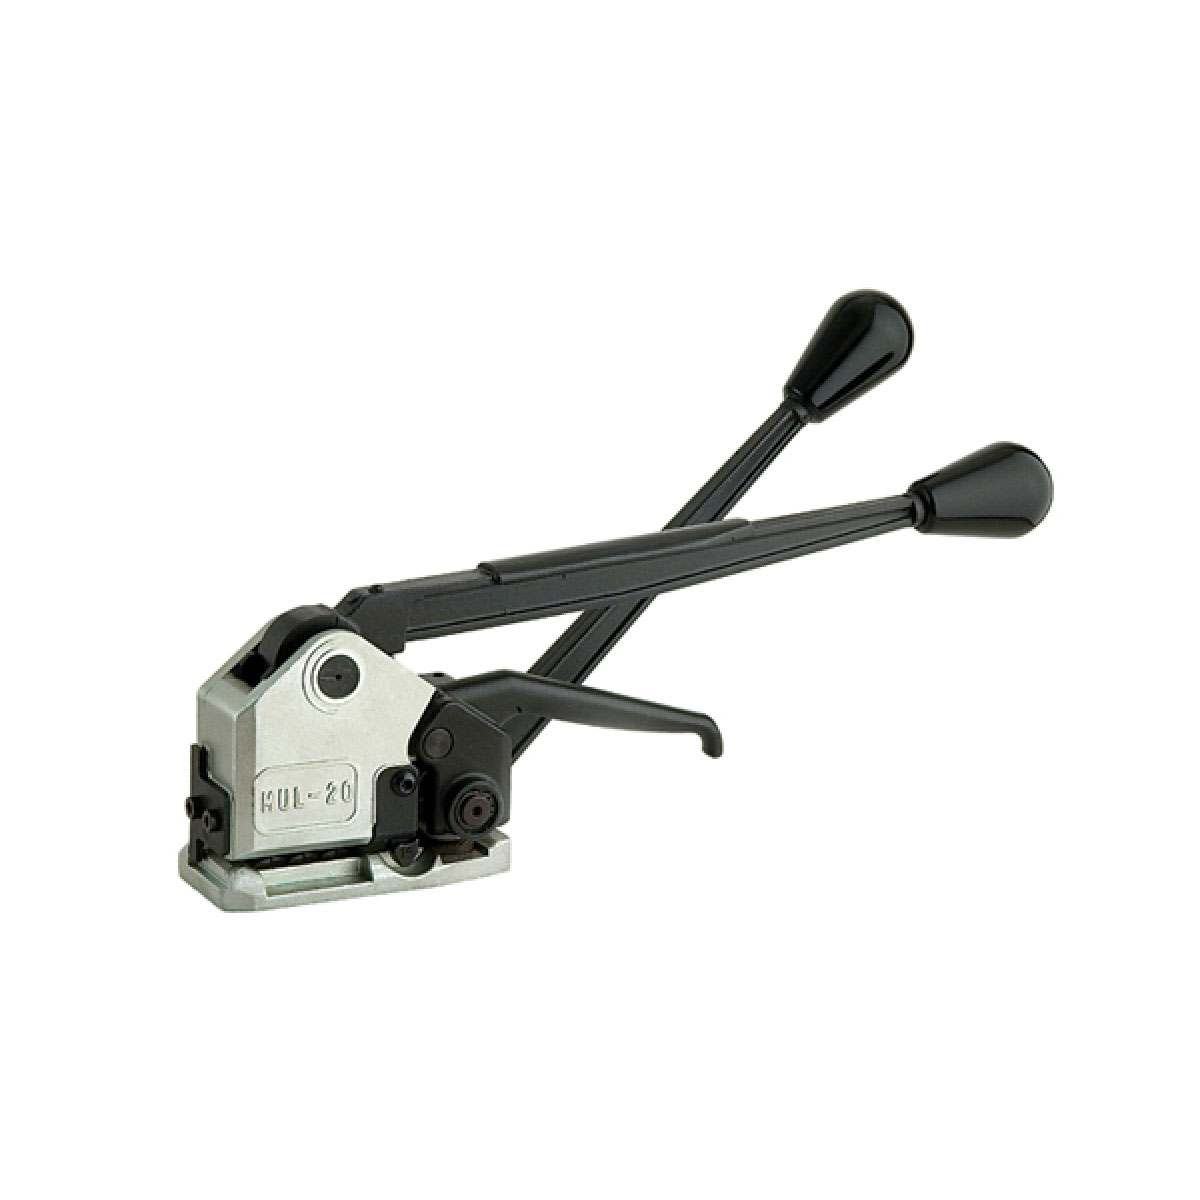 Manual Sealless Combination Strapping Tool (MUL-20)